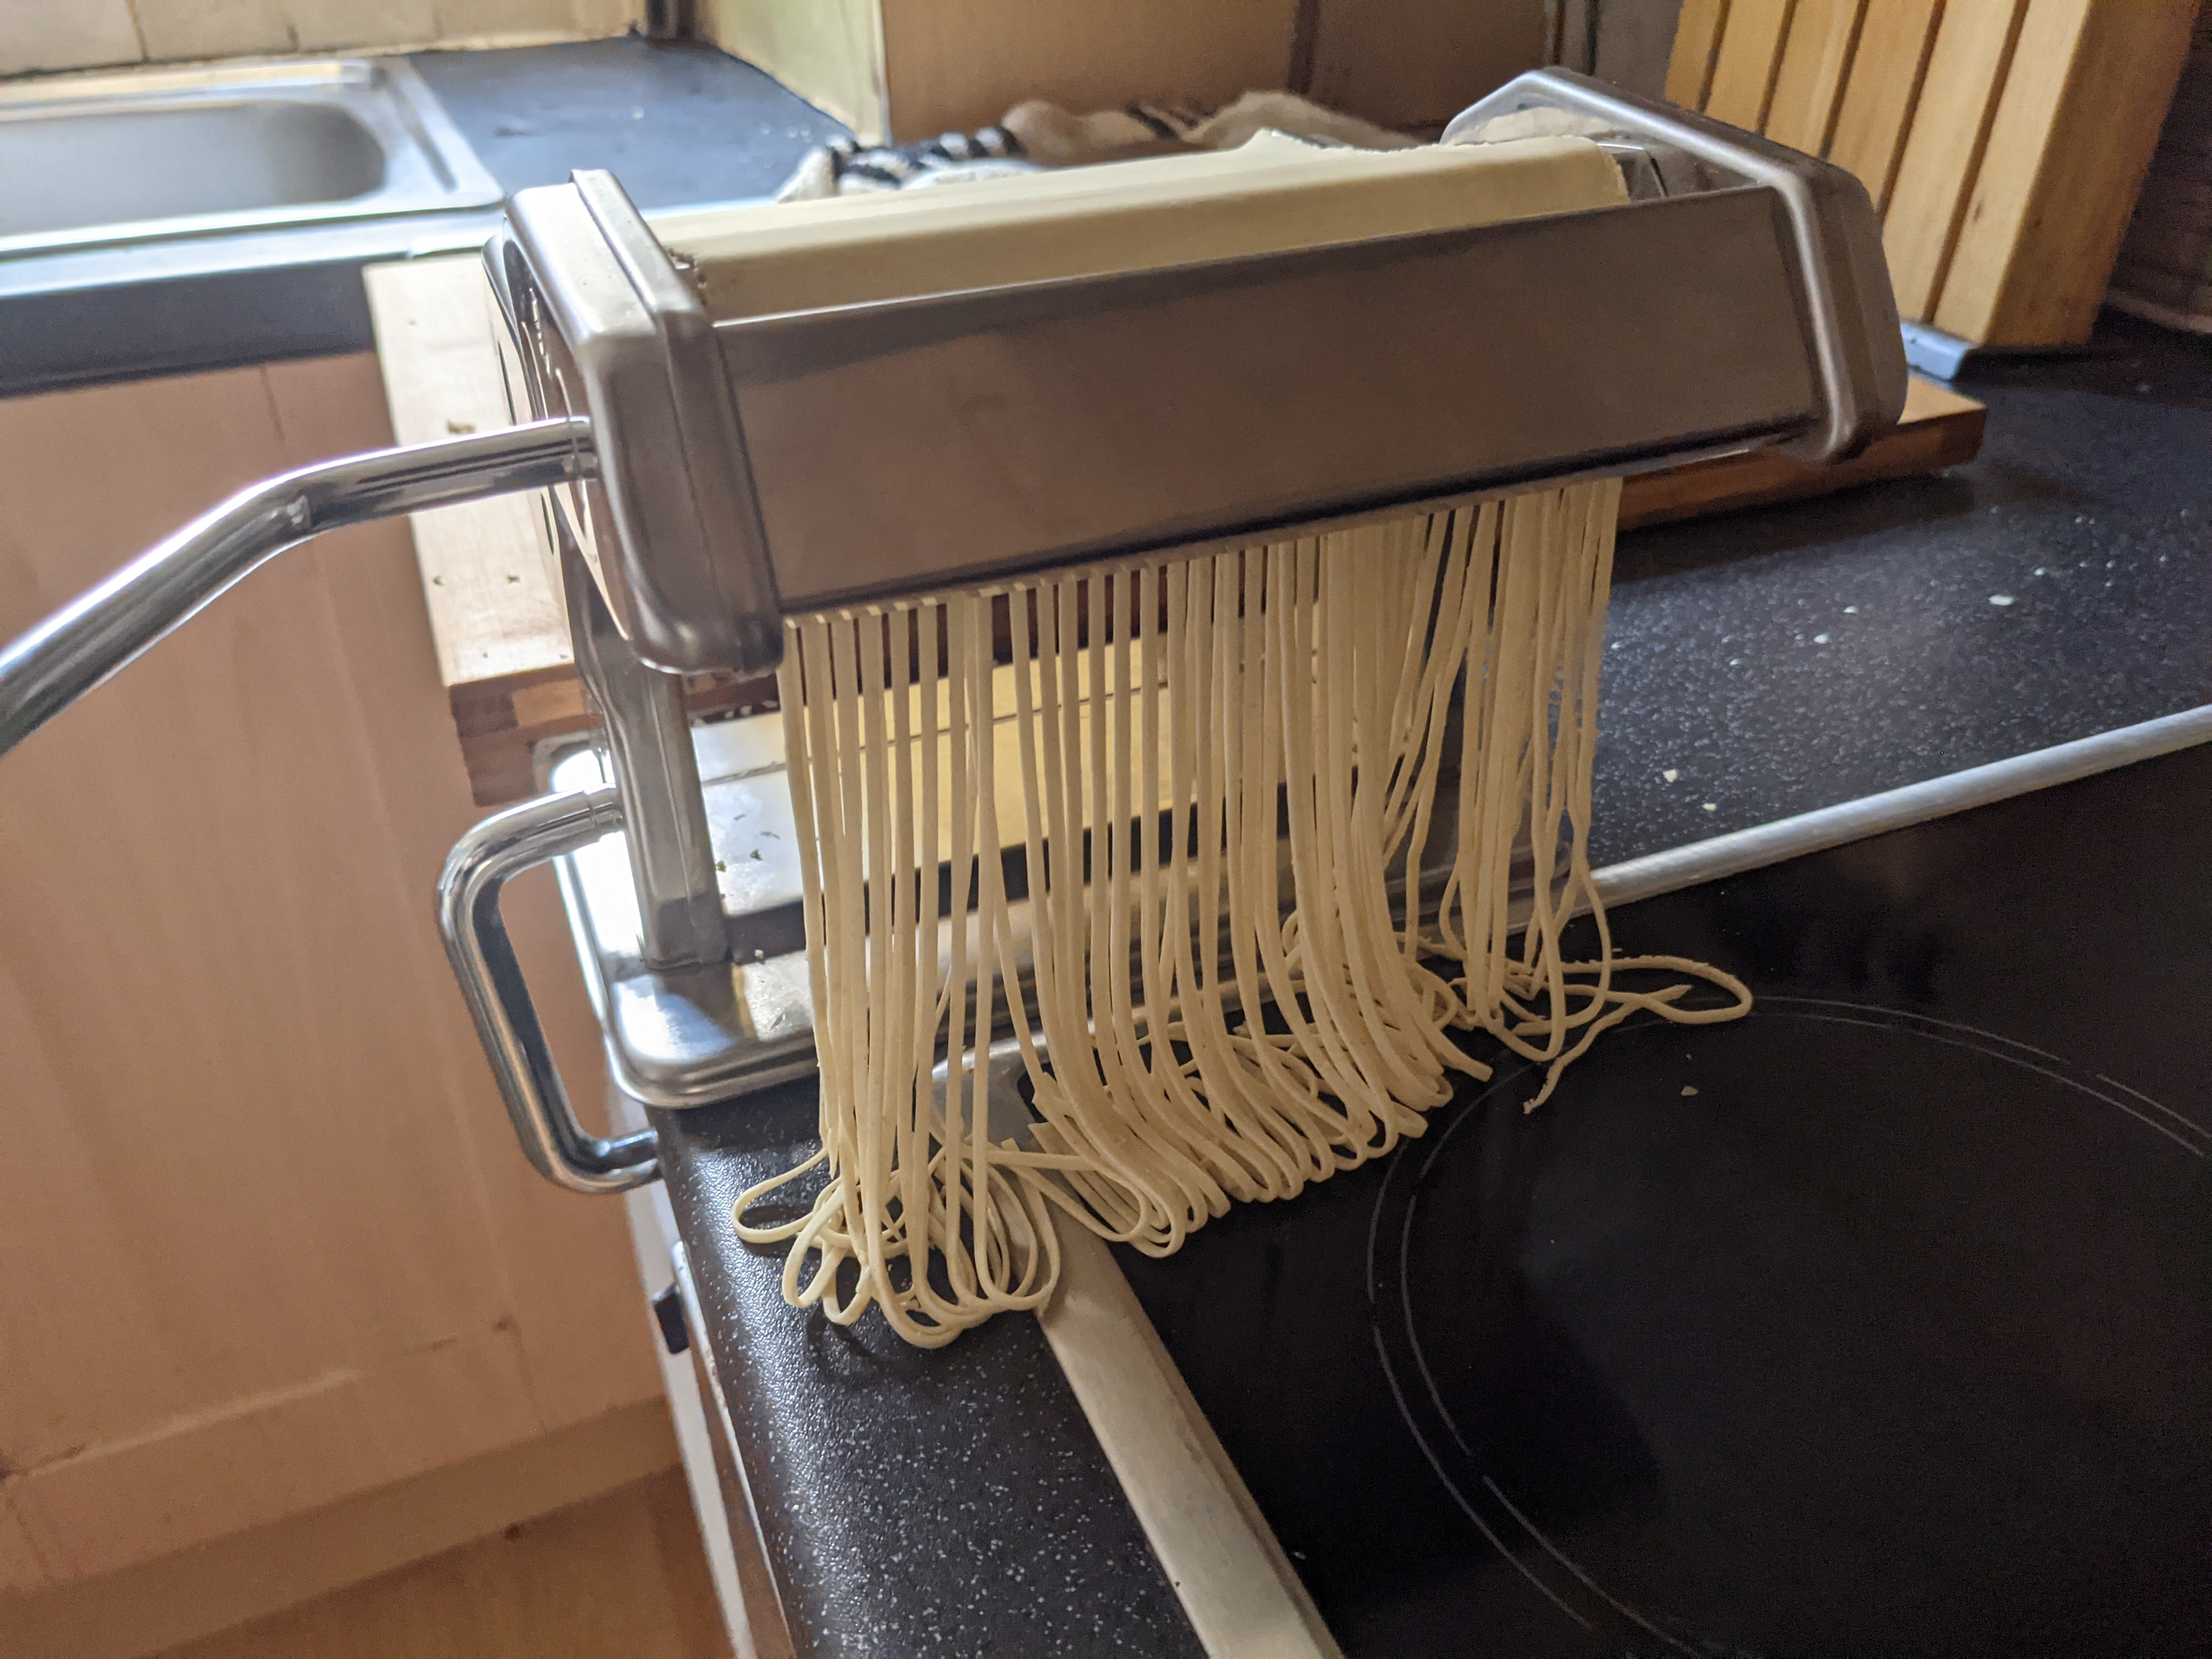 Noodles being cut with a pasta machine